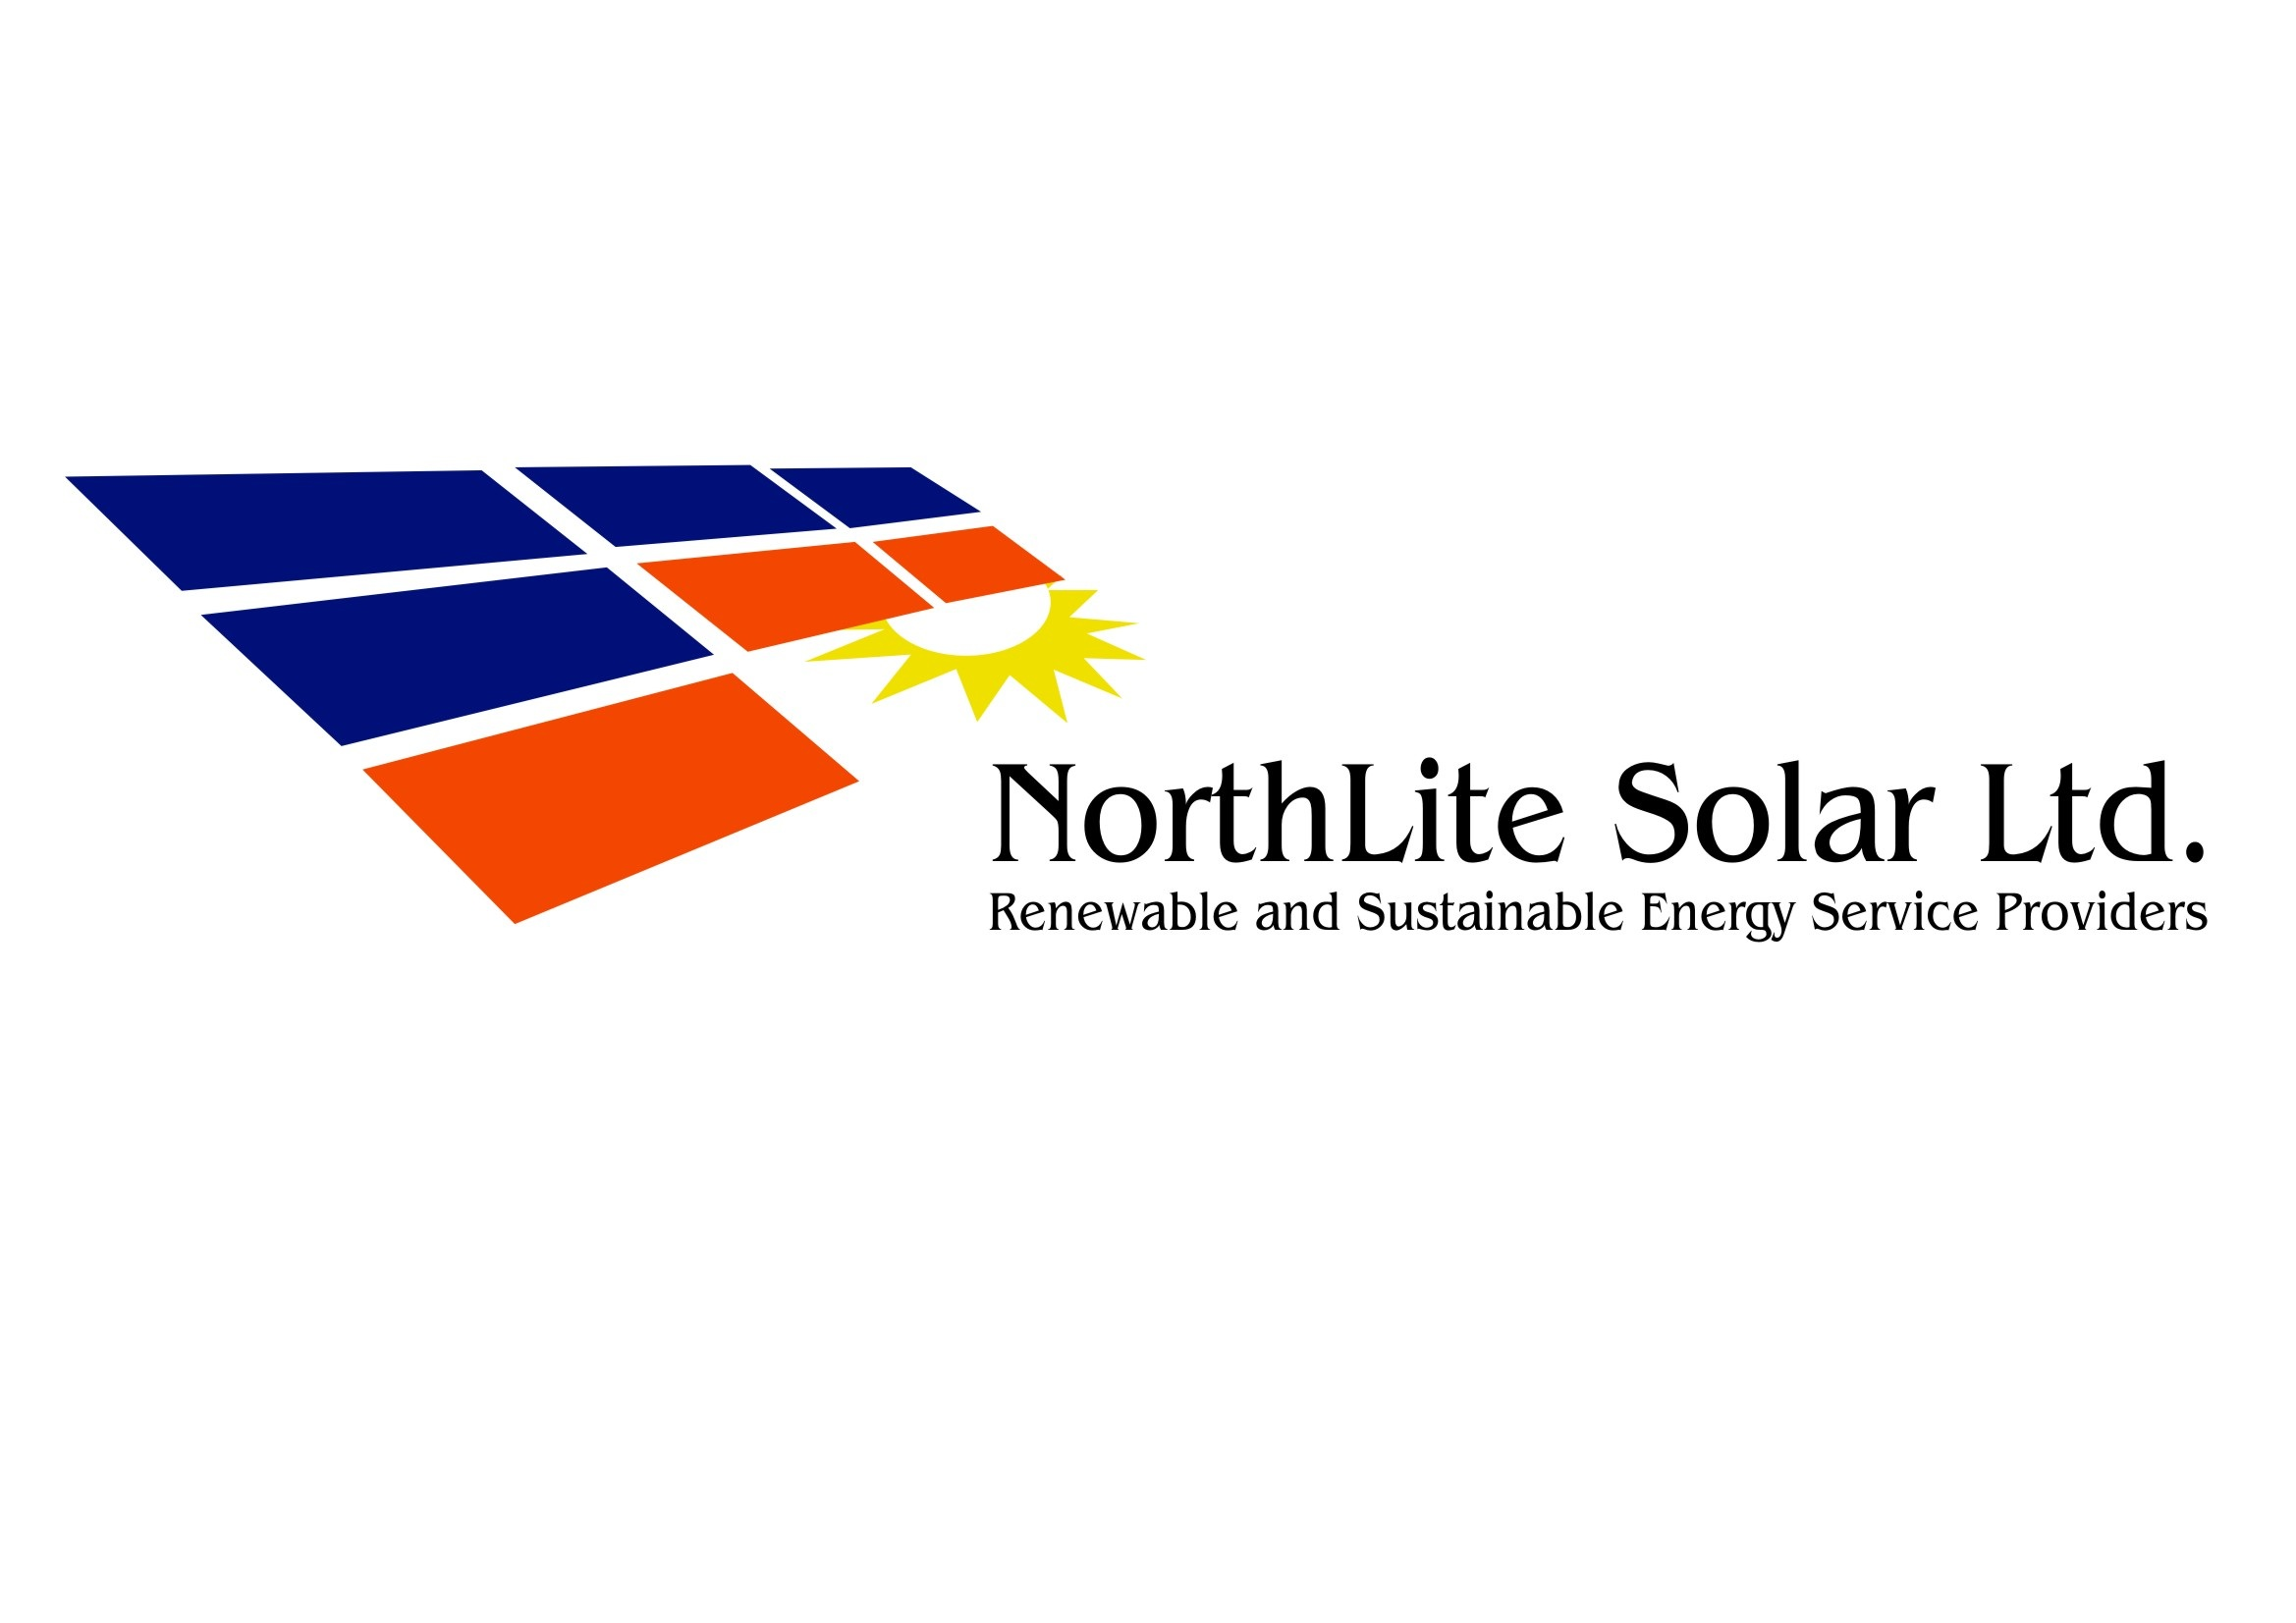 NorthLite Solar Limited